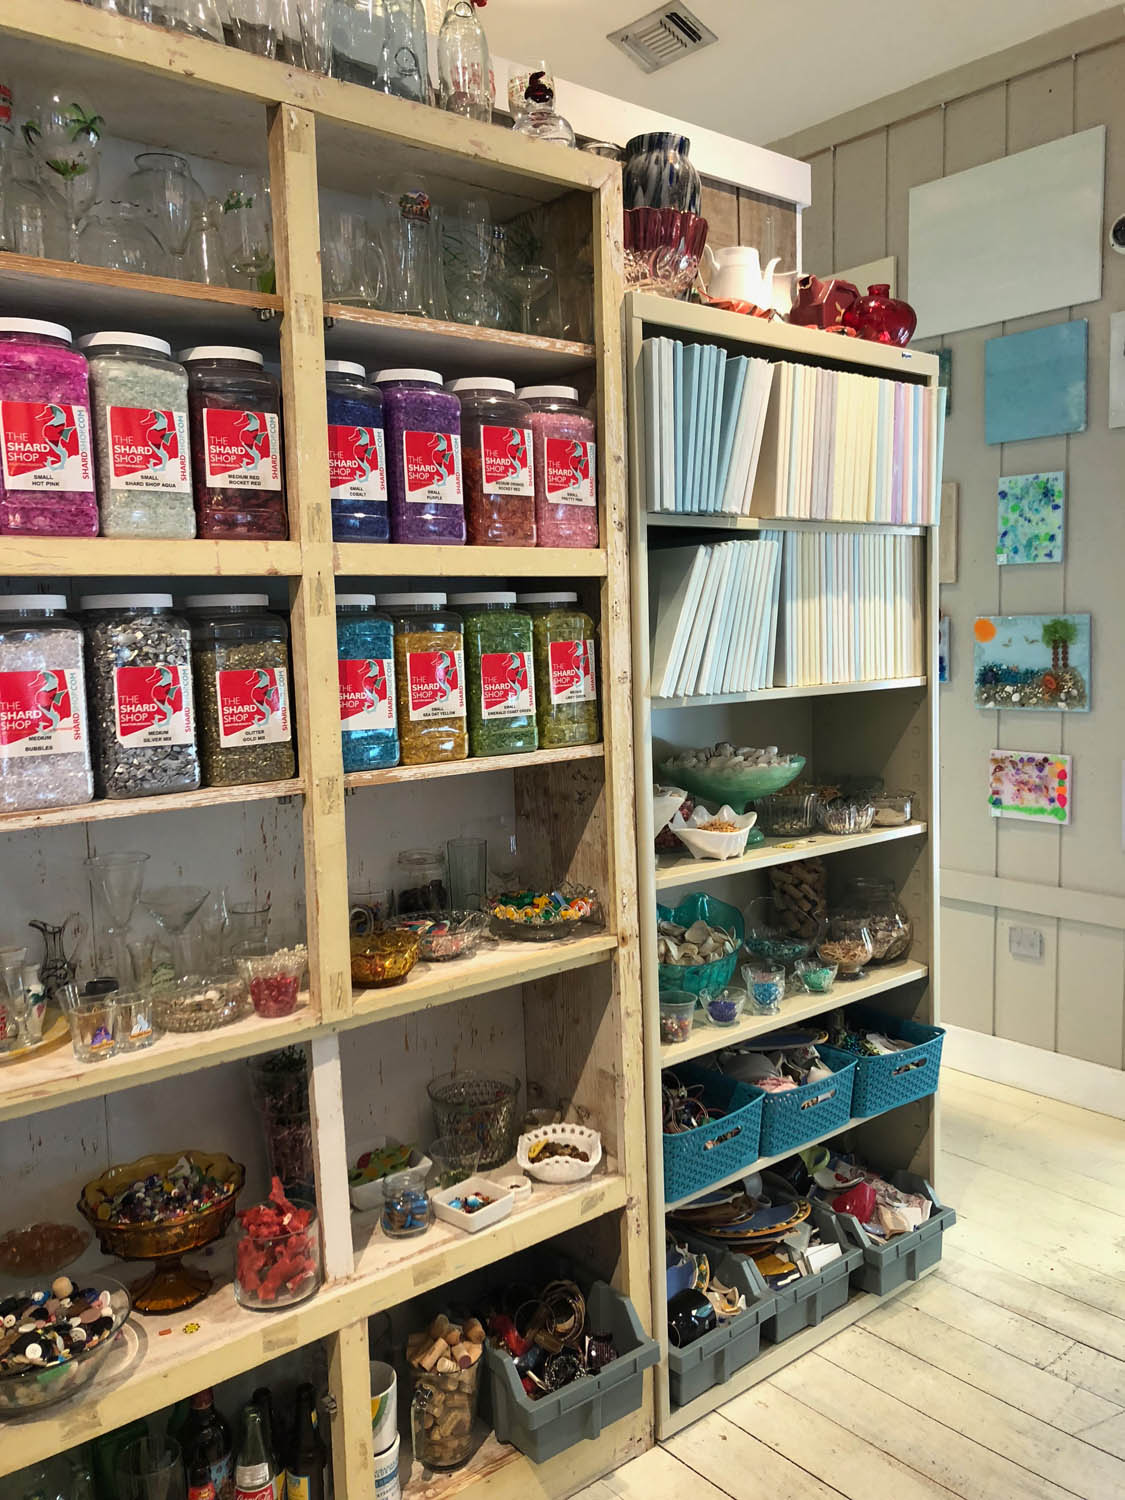 Products for sale at The Shard Shop